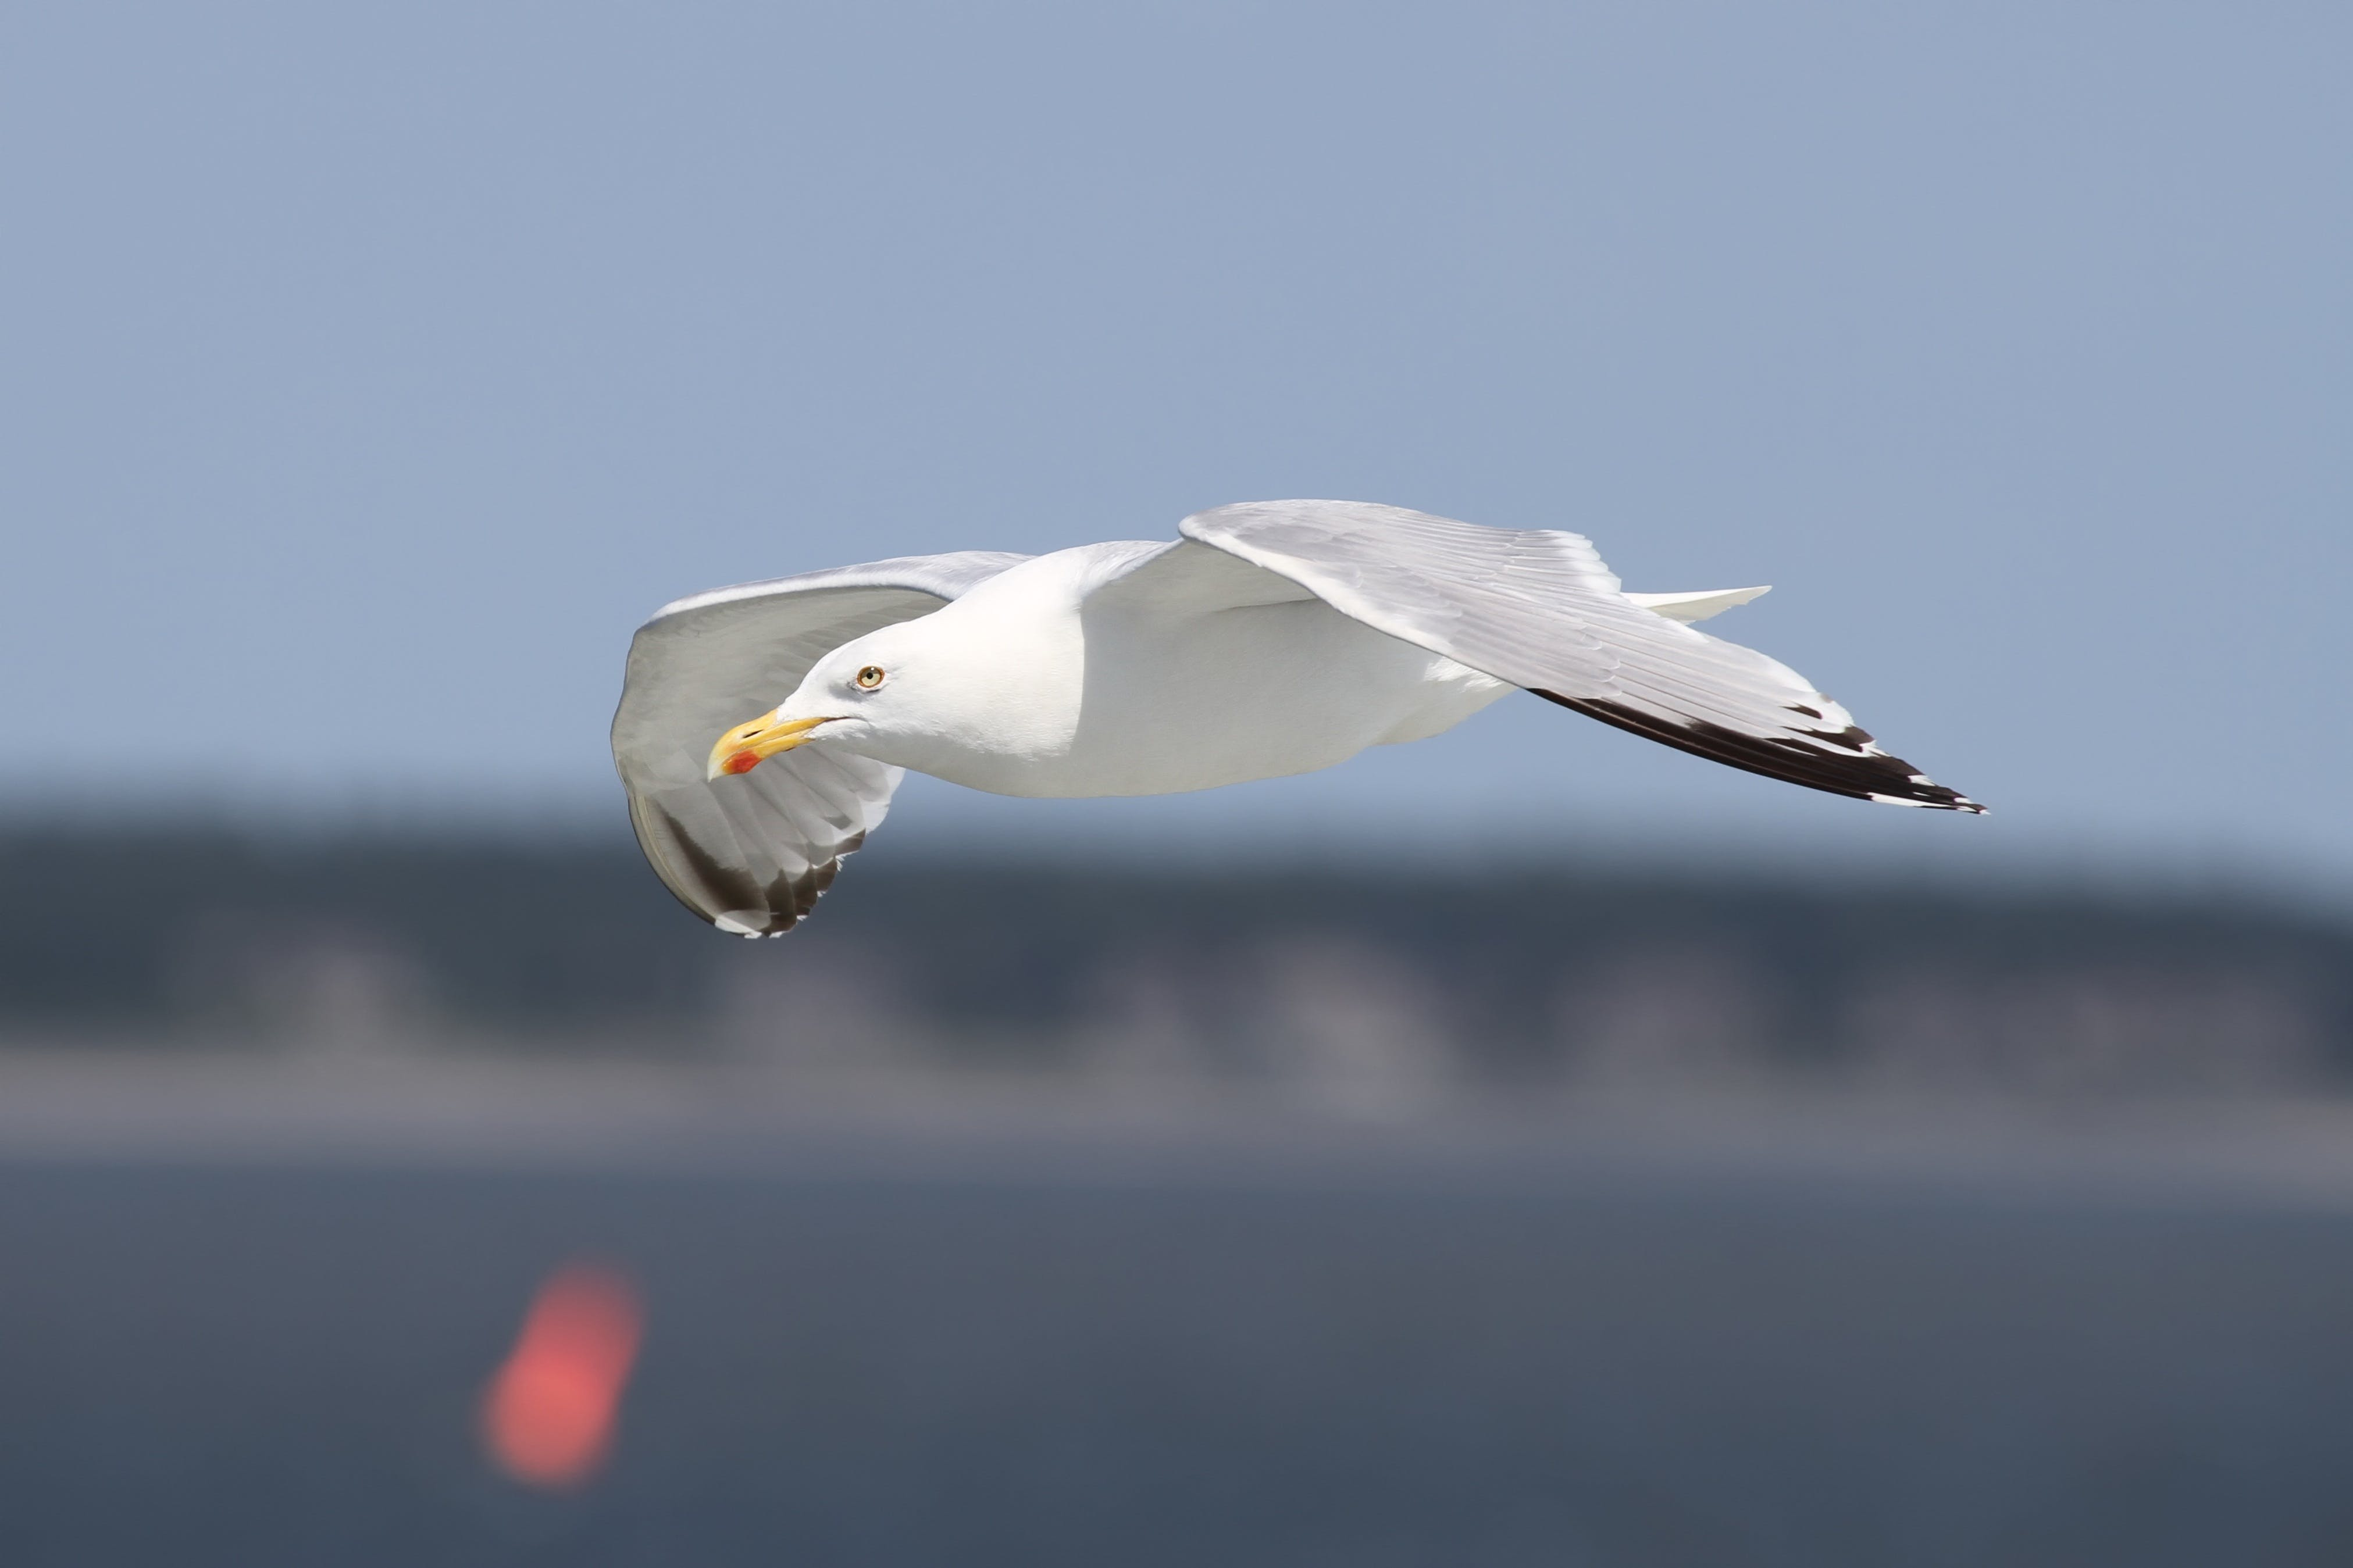 Auto Focus Photography of Flying White Bird during Daytime